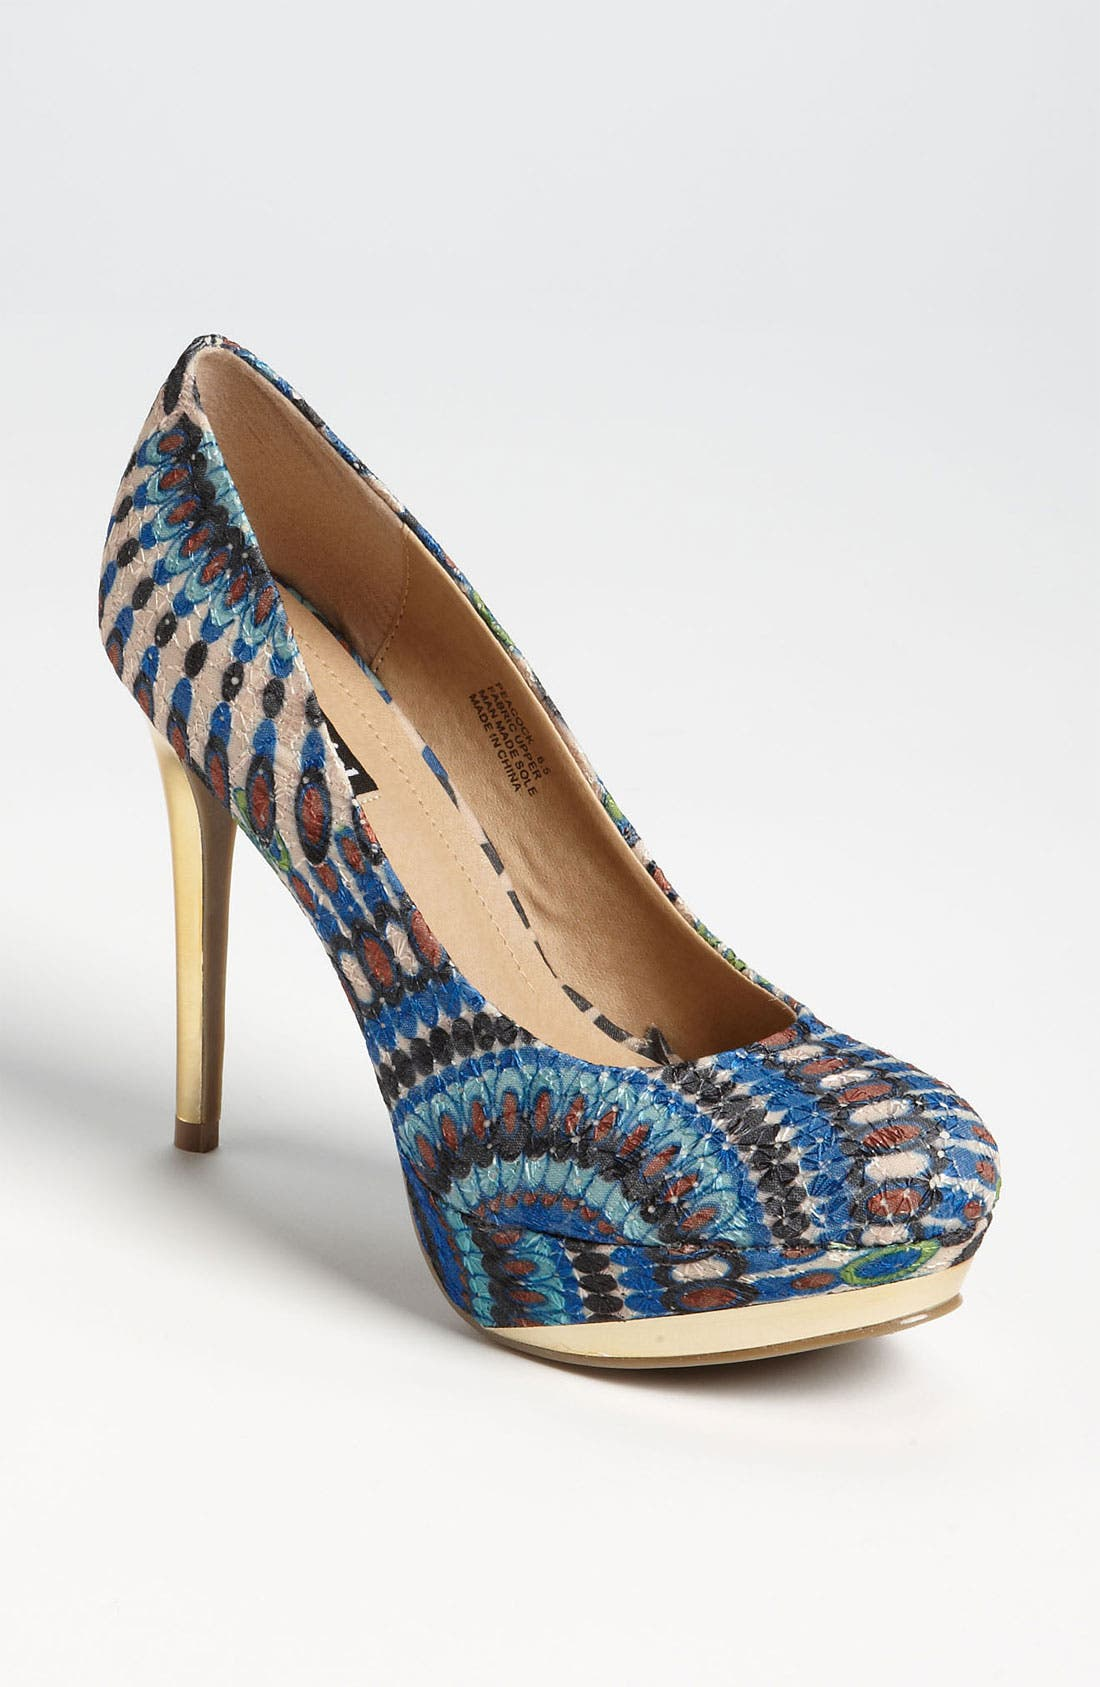 Alternate Image 1 Selected - ZiGi girl 'Peacock' Pump